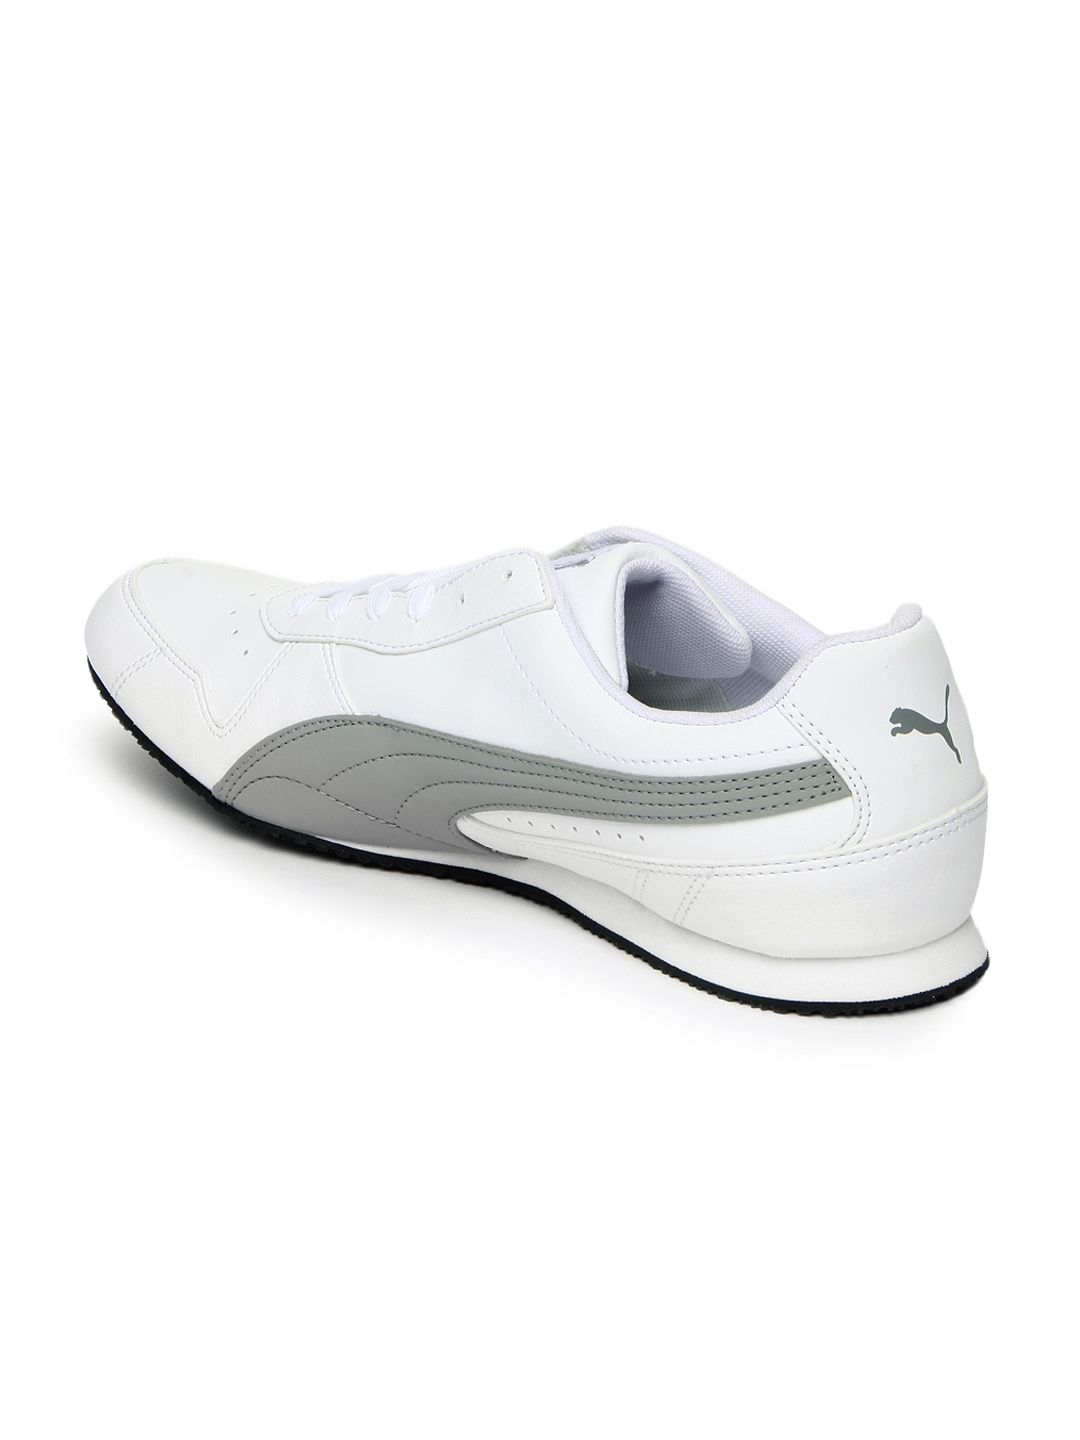 cb90f8d3c44 Buy Puma Men White Fieldster Casual Shoes 1349127 for men online in india  on Myntra at Yebhi.com